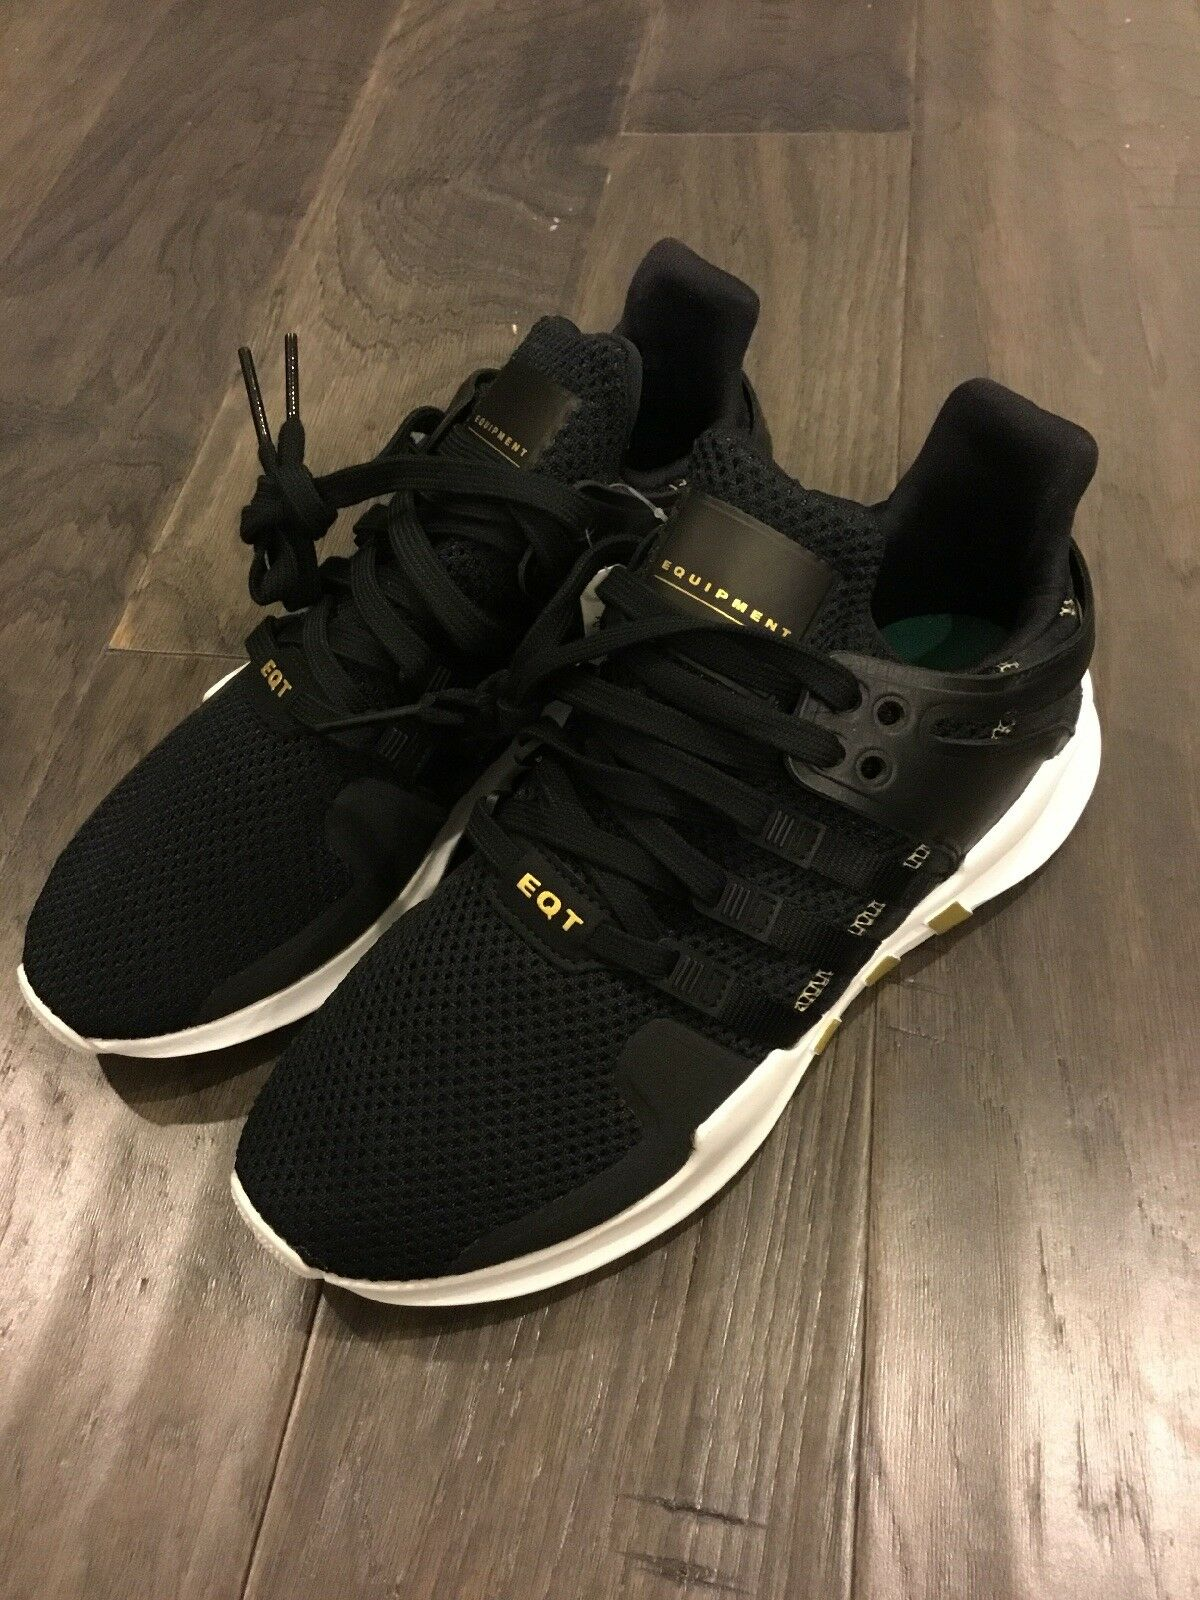 Adidas Equipment Support Adv W EQT shoes shoes shoes Sneakers New AC7972 Black gold Size 8.5 a8eb3b